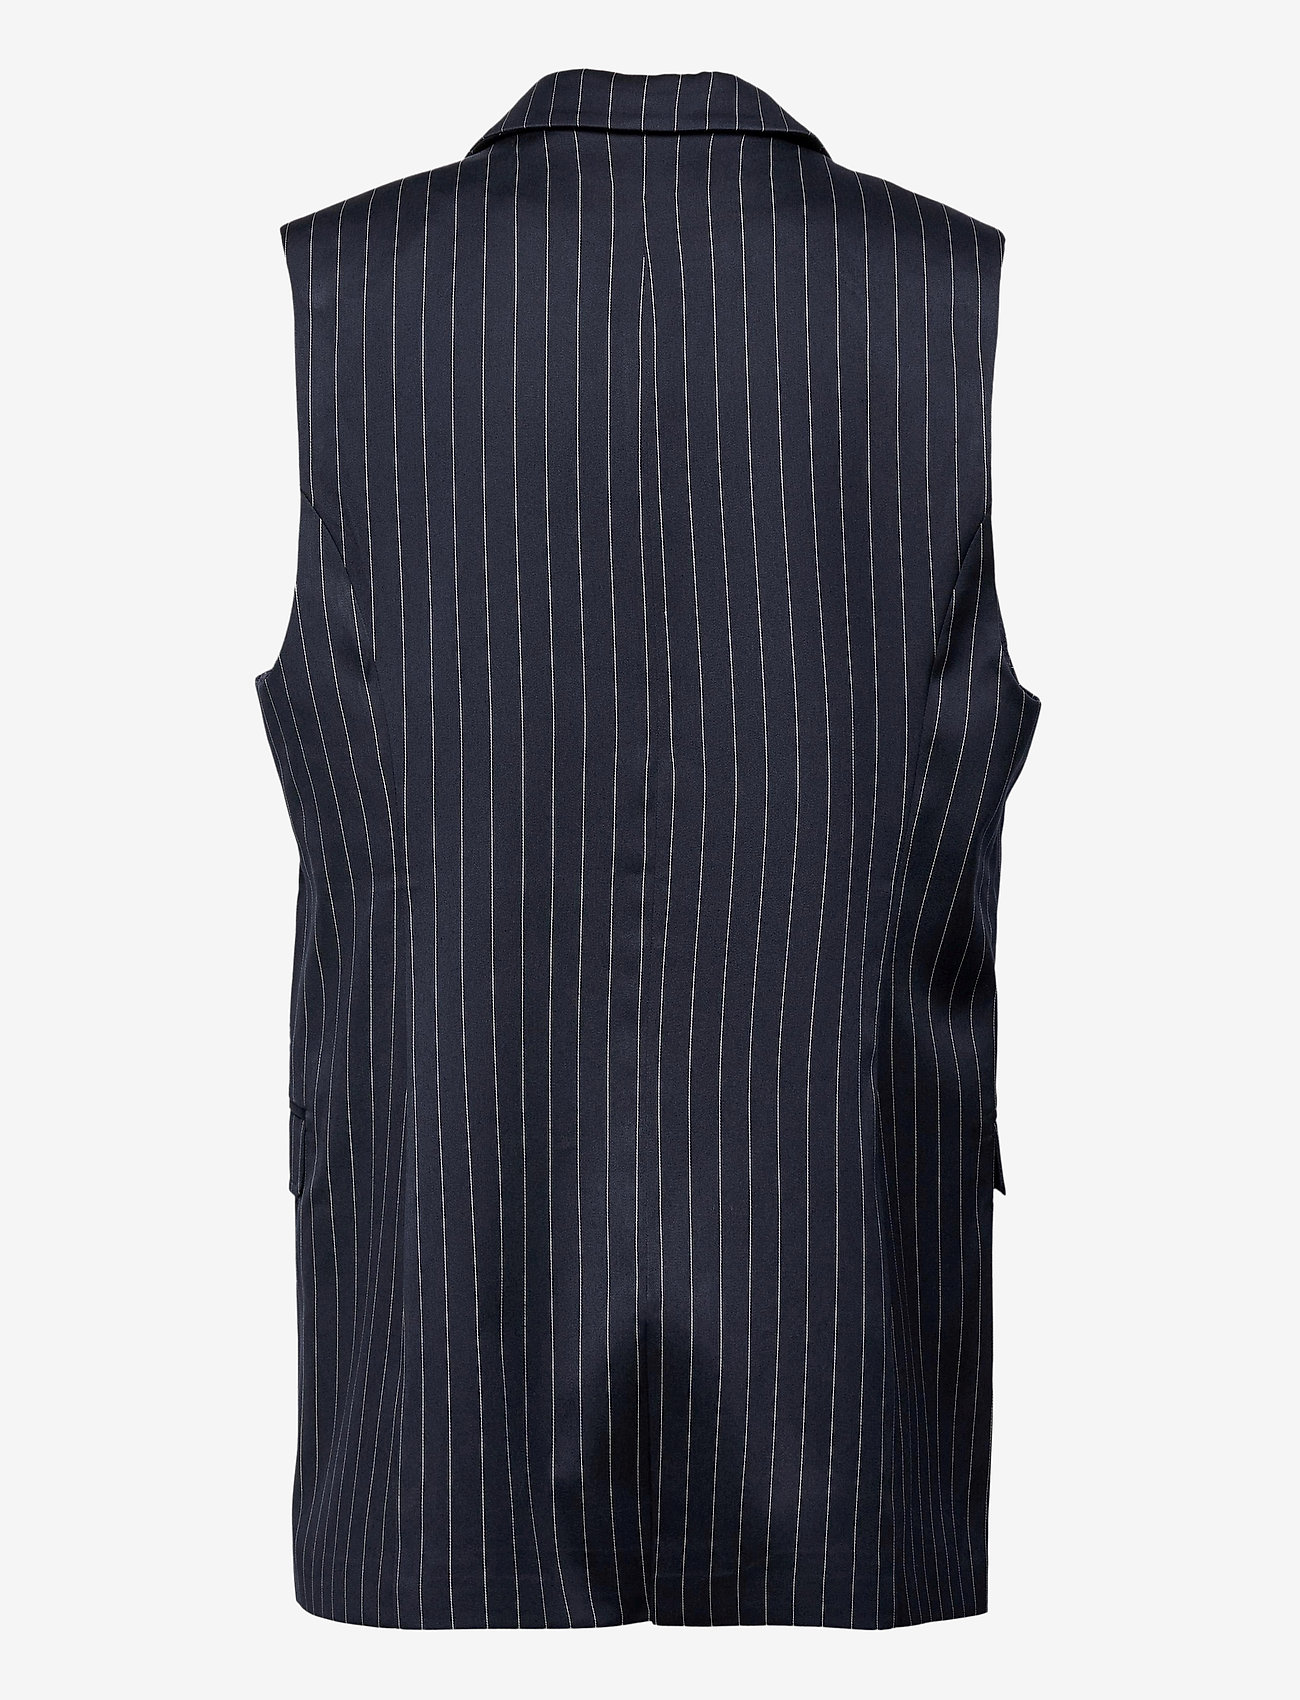 Munthe - TOADA - knitted vests - indigo - 1